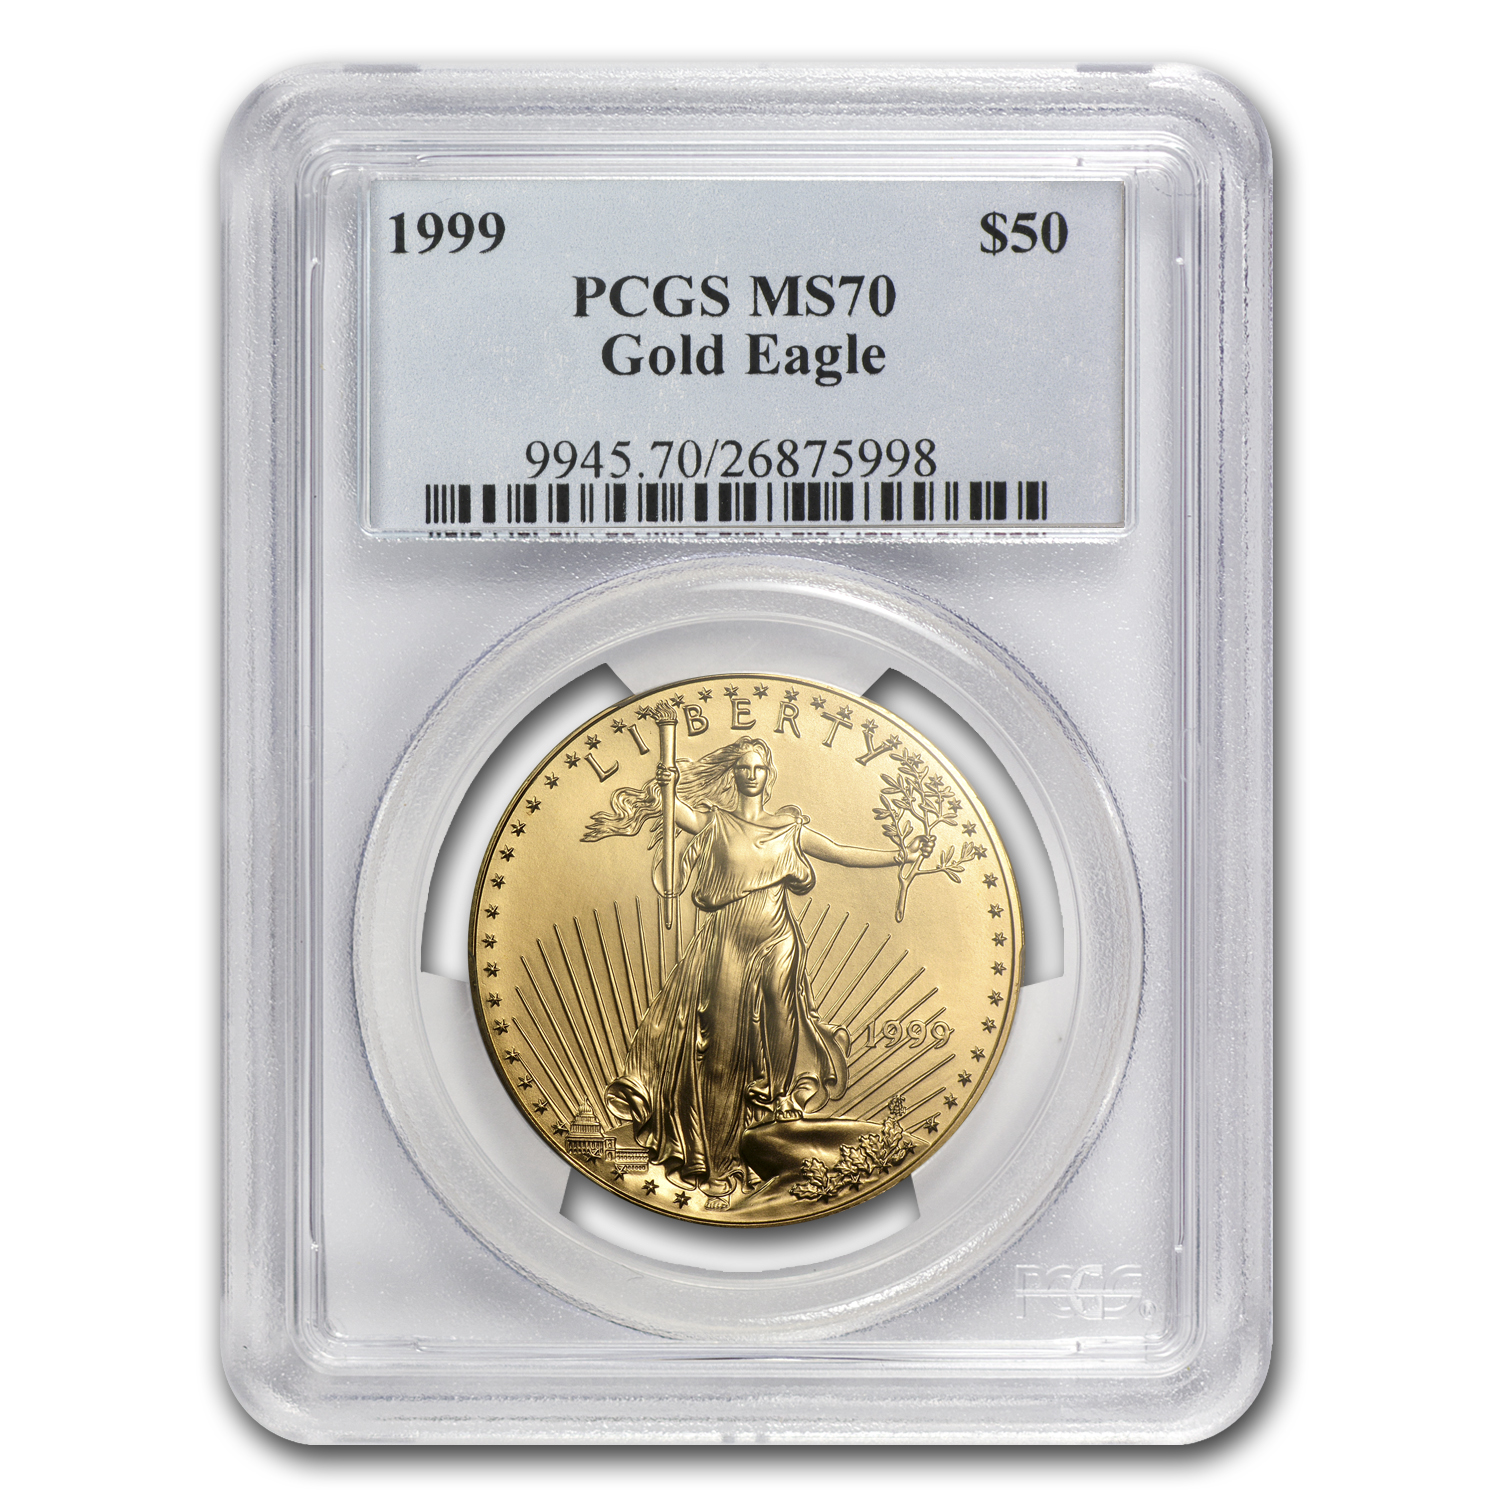 1999 1 oz Gold American Eagle MS-70 PCGS